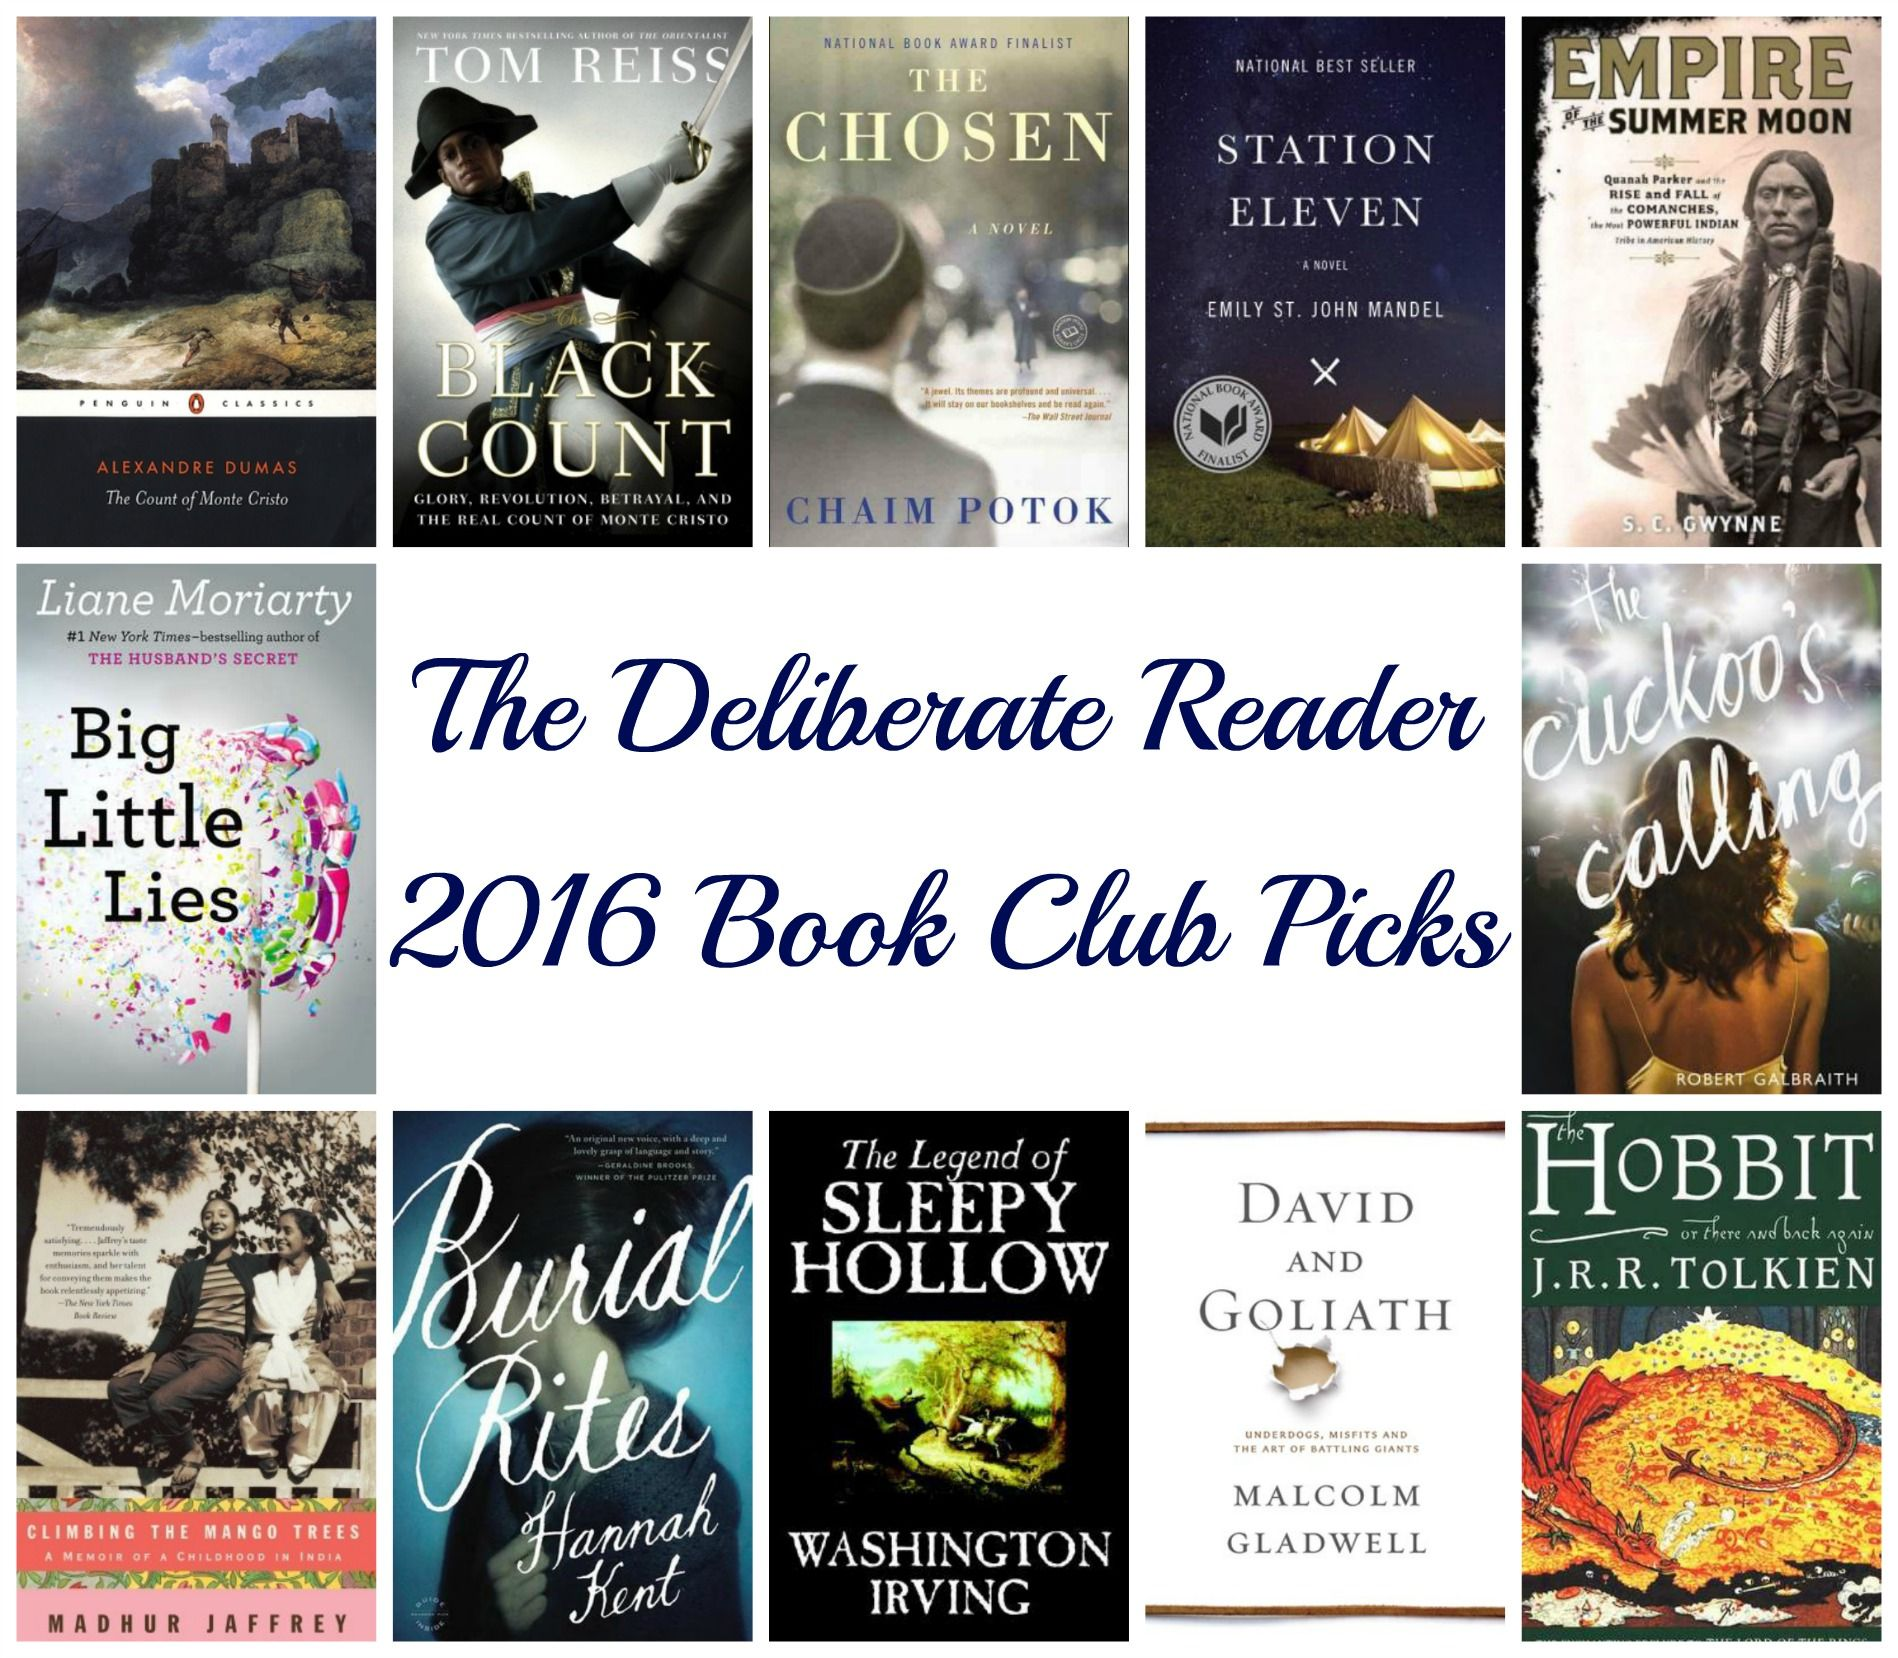 The Deliberate Reader: 2016 Book Club Selections   I'm thinking I might  read along with this book club in 2016!